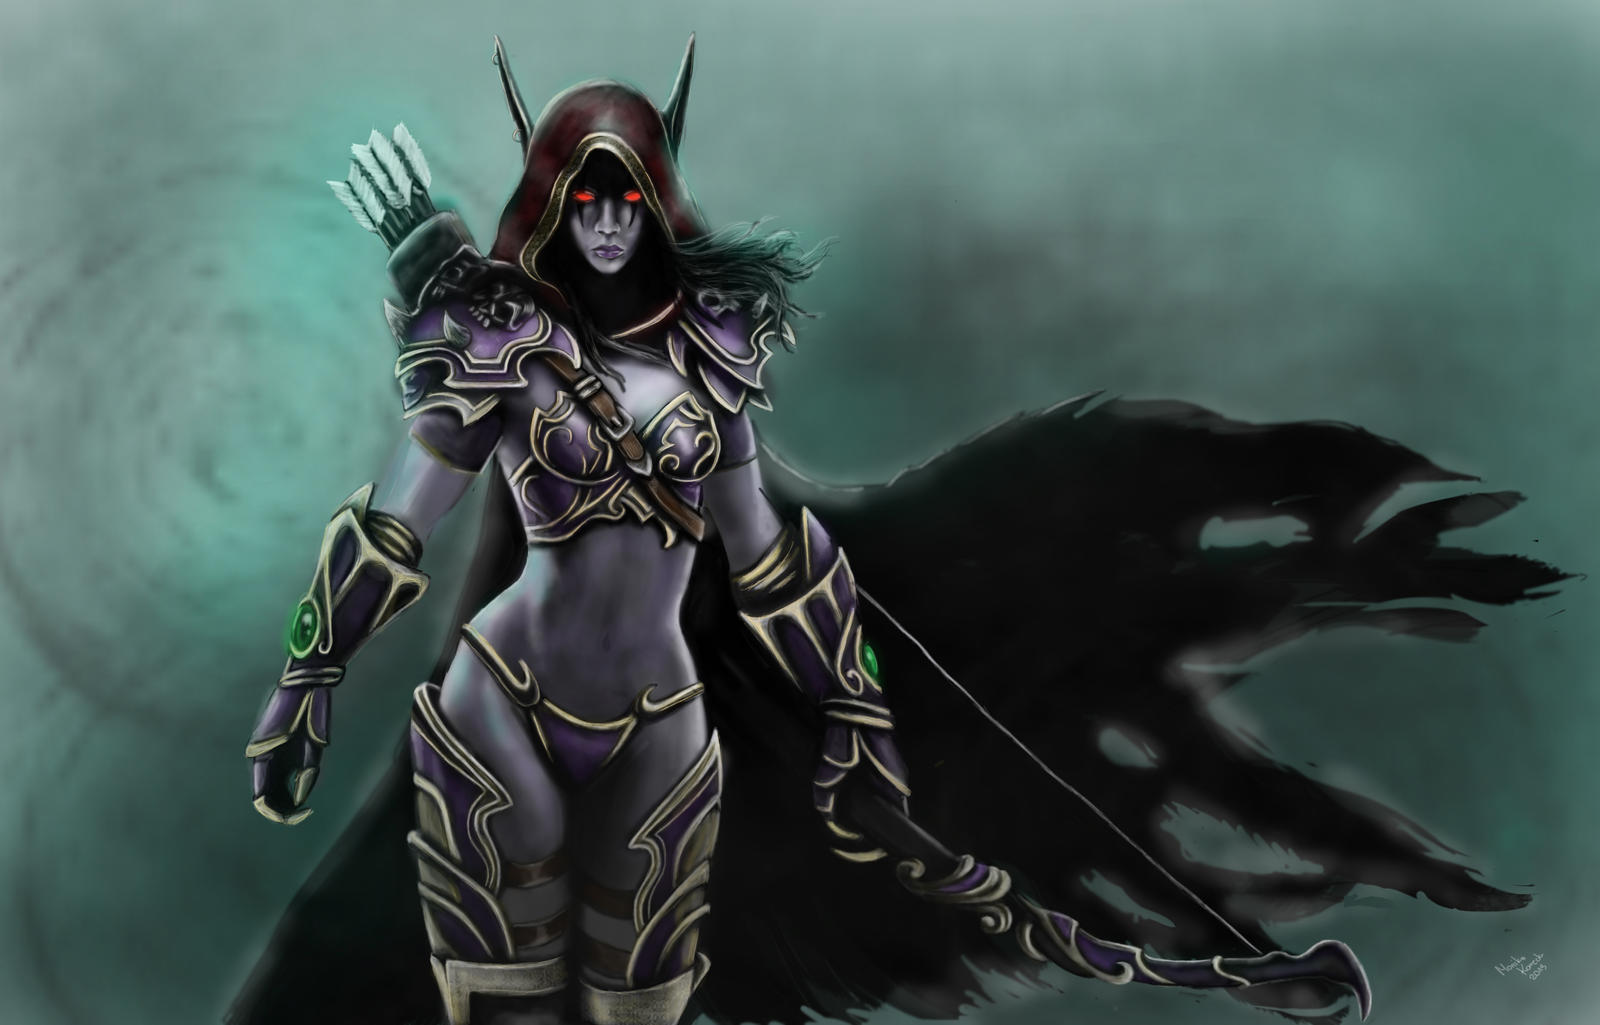 sylvanas_windrunner__world_of_warcraft_b